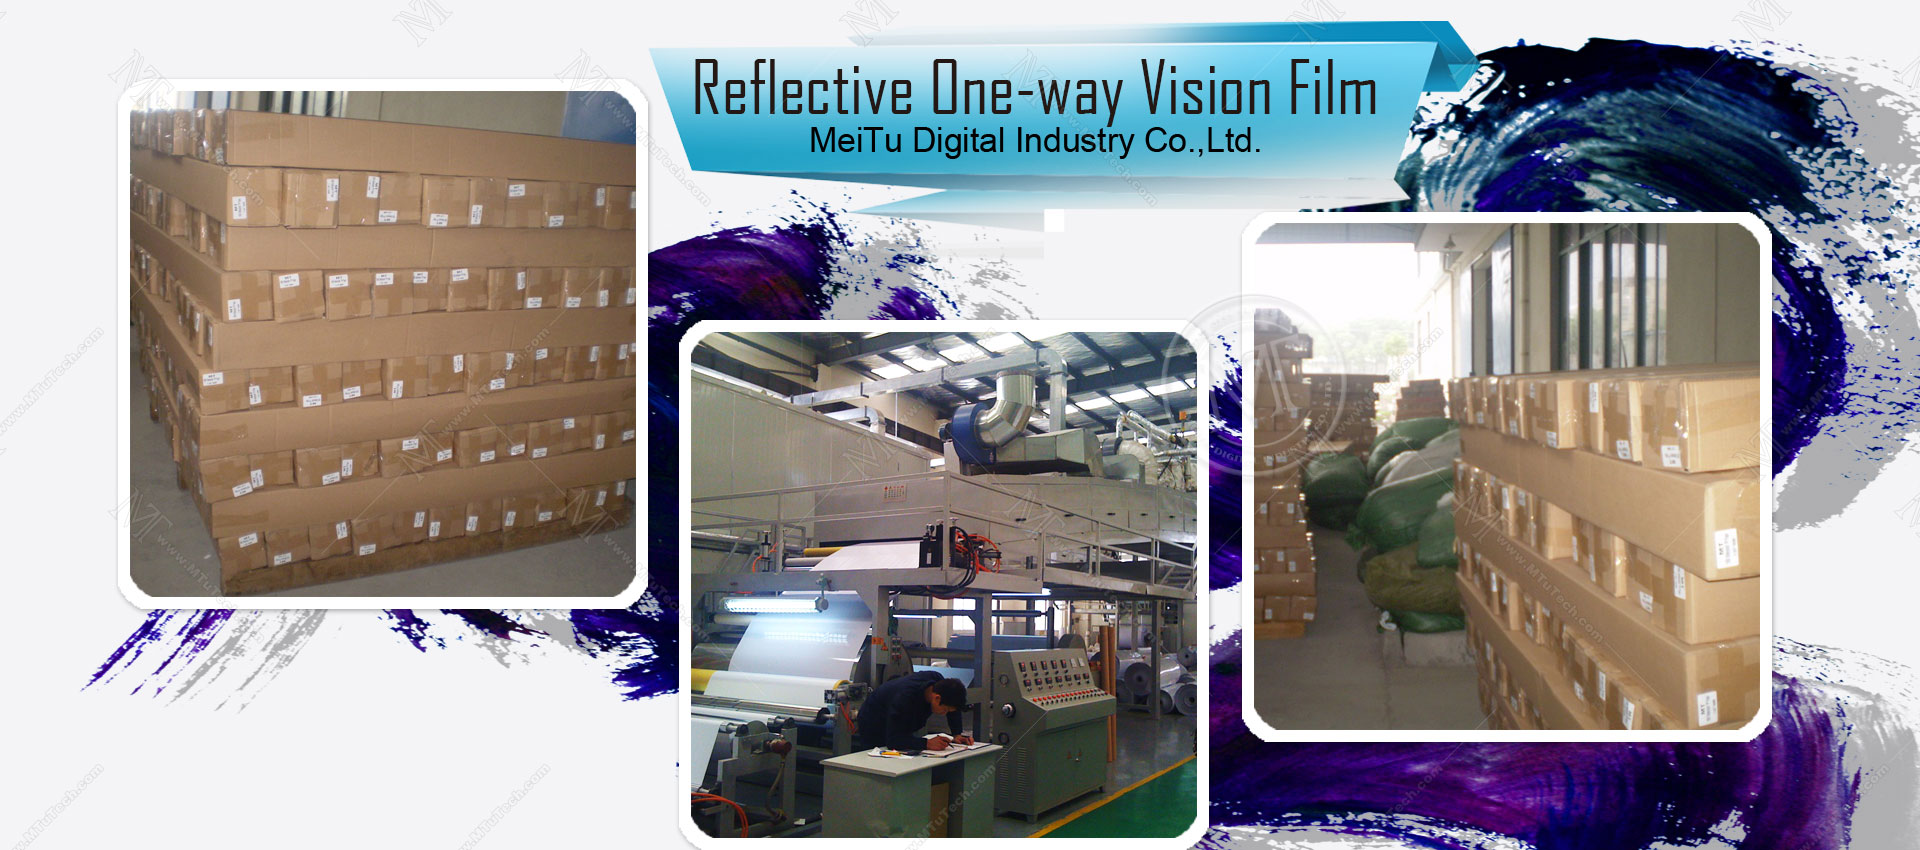 Reflective One-way Vision Film